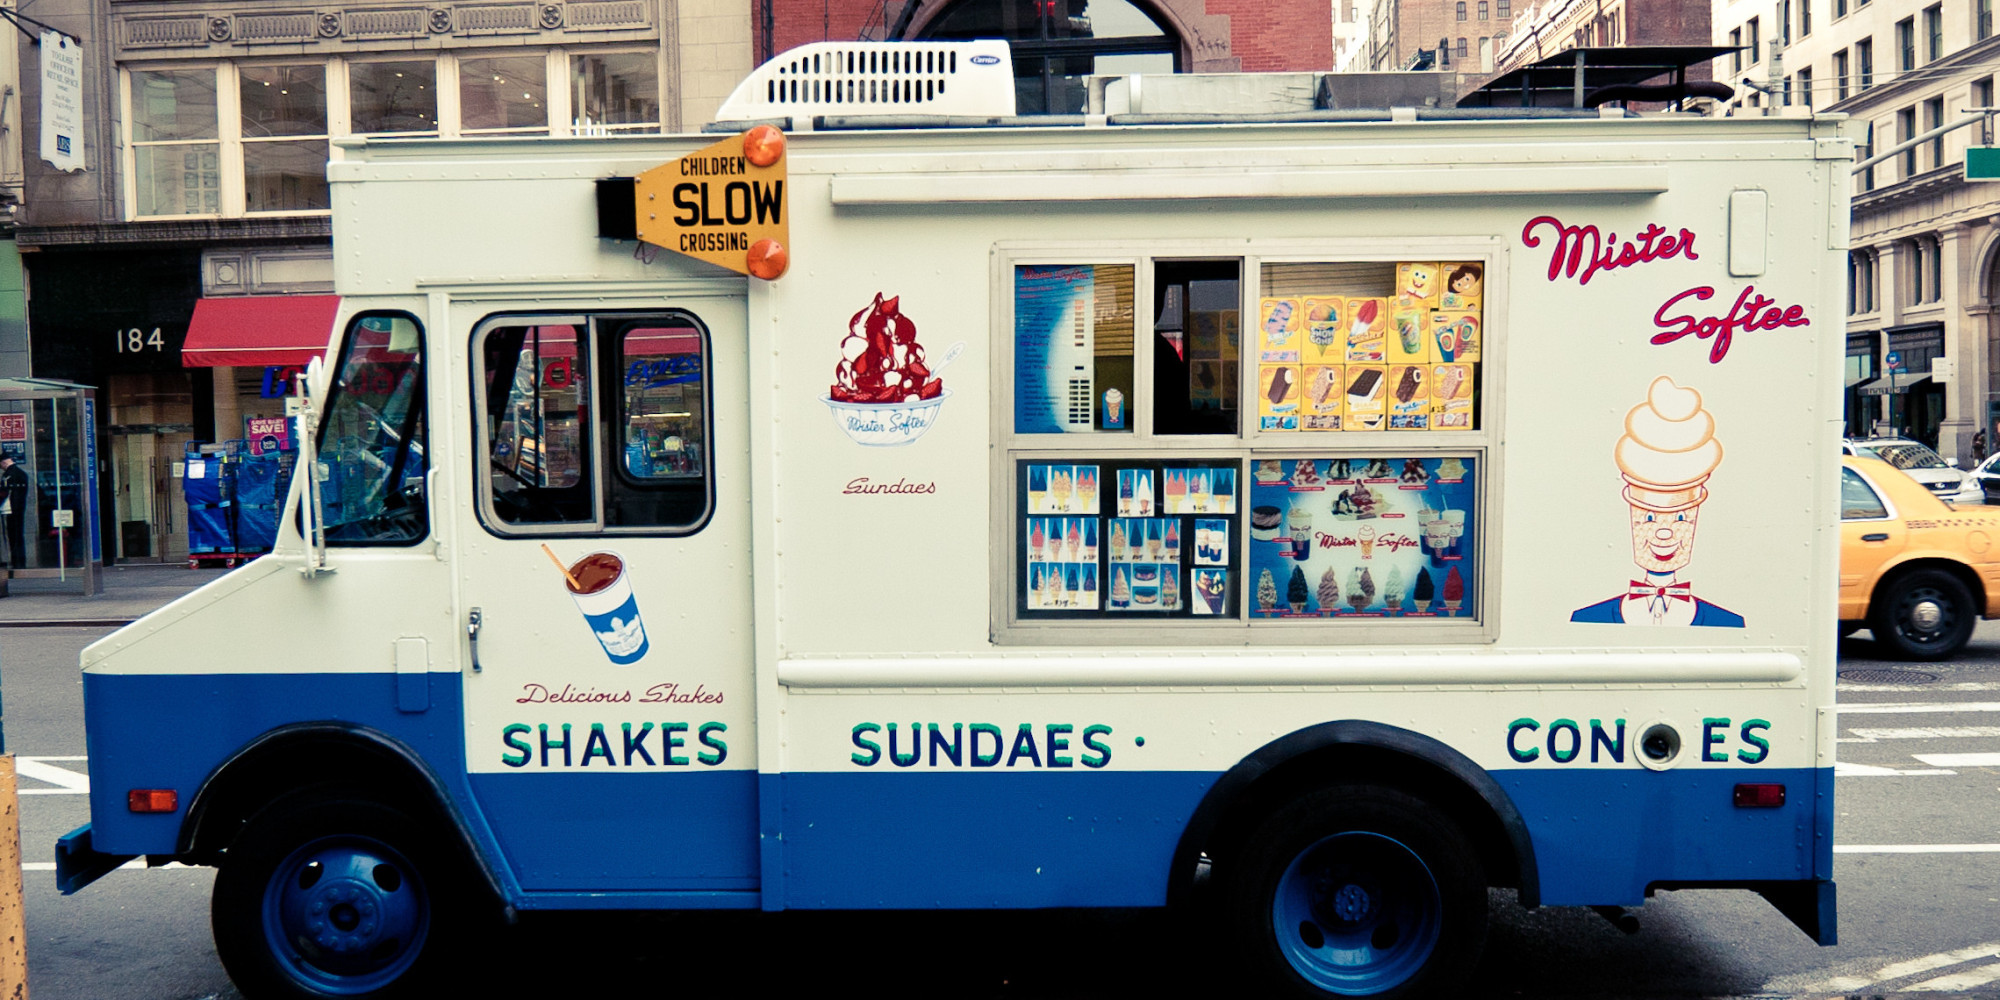 classical conditioning and ice cream truck Classical conditioning is a phenomenon you may have encountered in psych 101 it occurs when an act like ringing a chime becomes associated with an automatic response like desiring food and salivating.